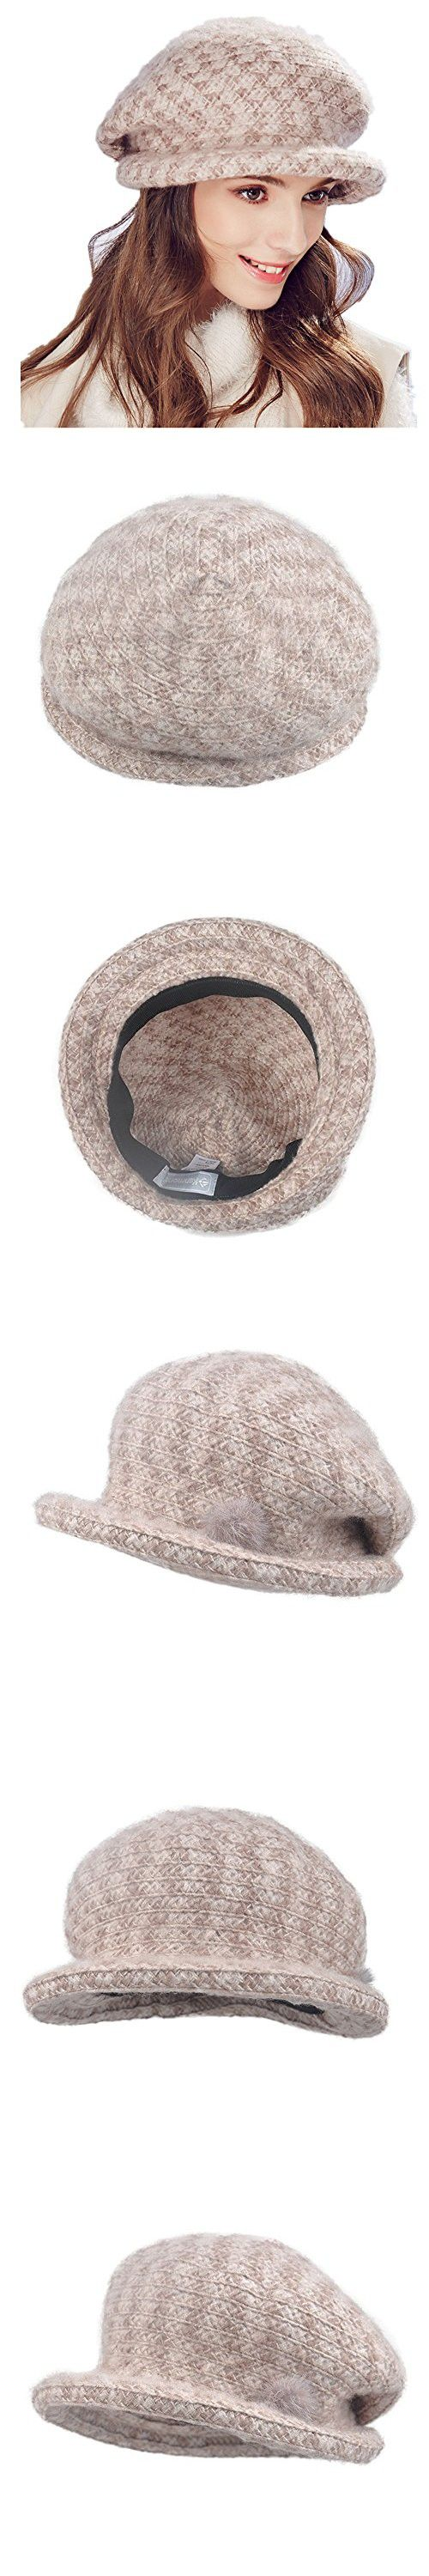 Kenmont Autumn Winter Women Beret Hat Lady Outdoor Acrylic Bucket Cap (Apricot)